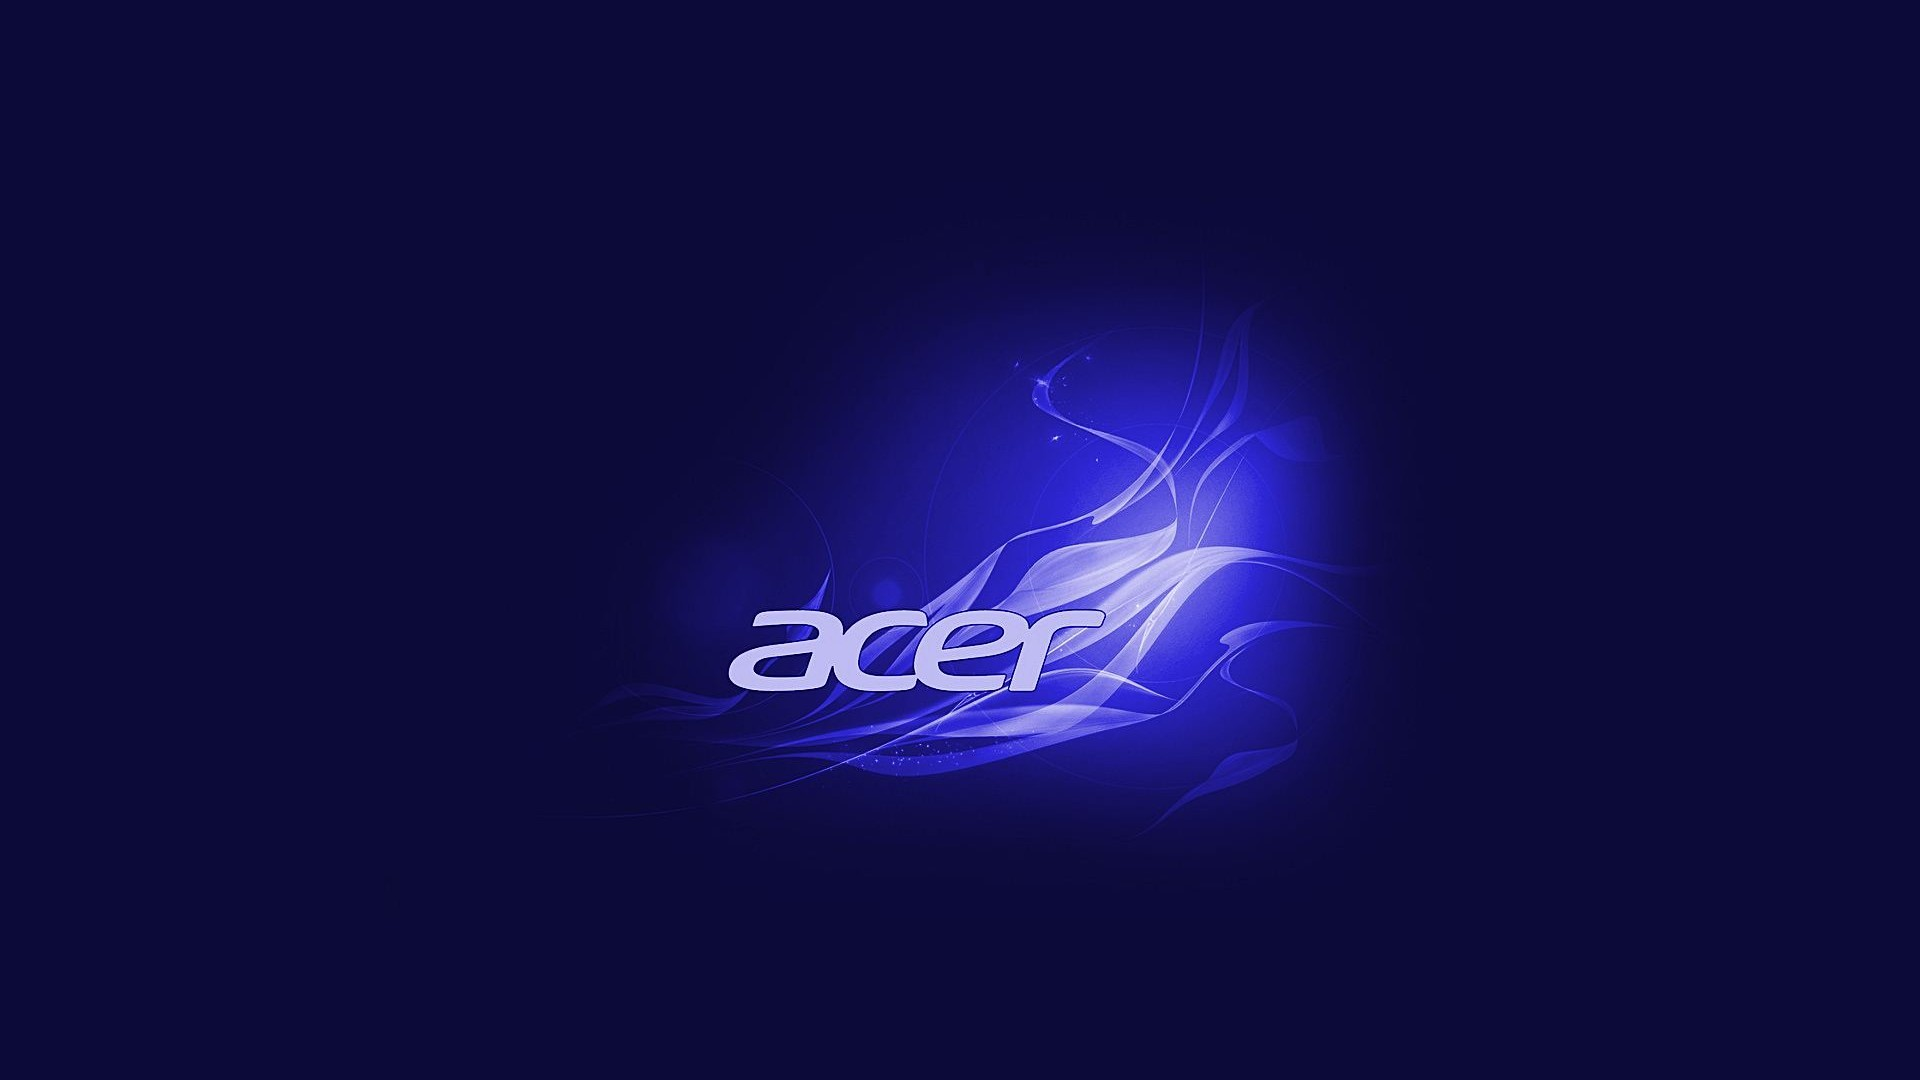 Acer Wallpaper Windows 7 65 Pictures